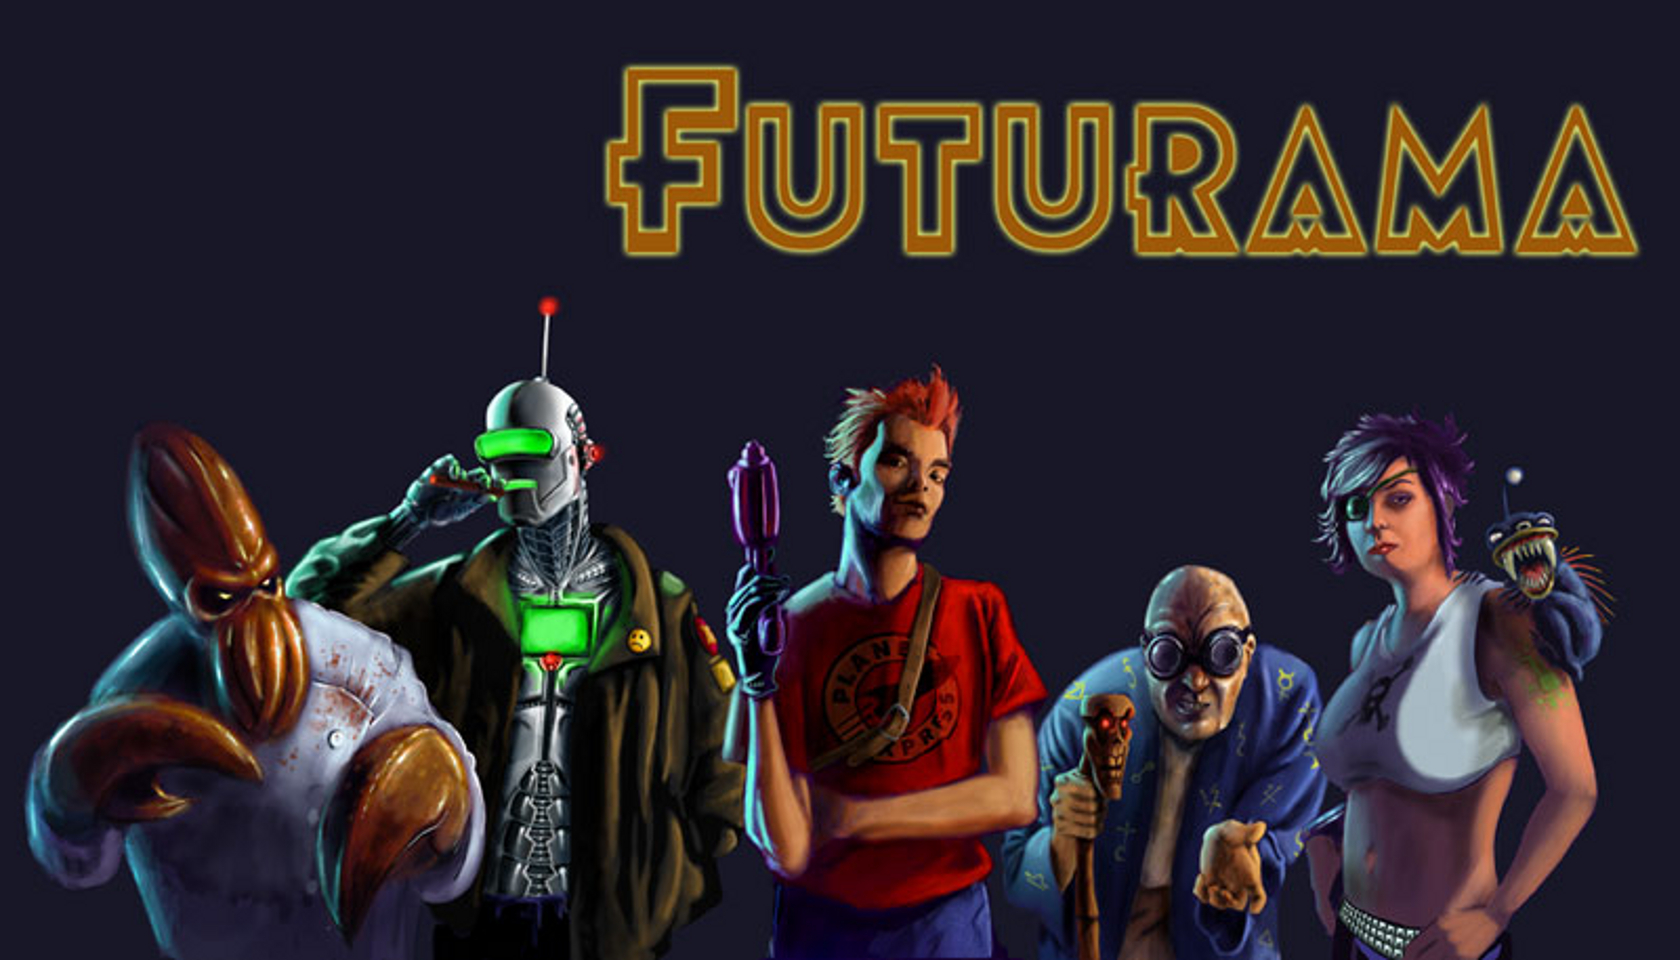 Futurama Wallpaper and Background Image | 1680x960 | ID:78715 - Wallpaper Abyss